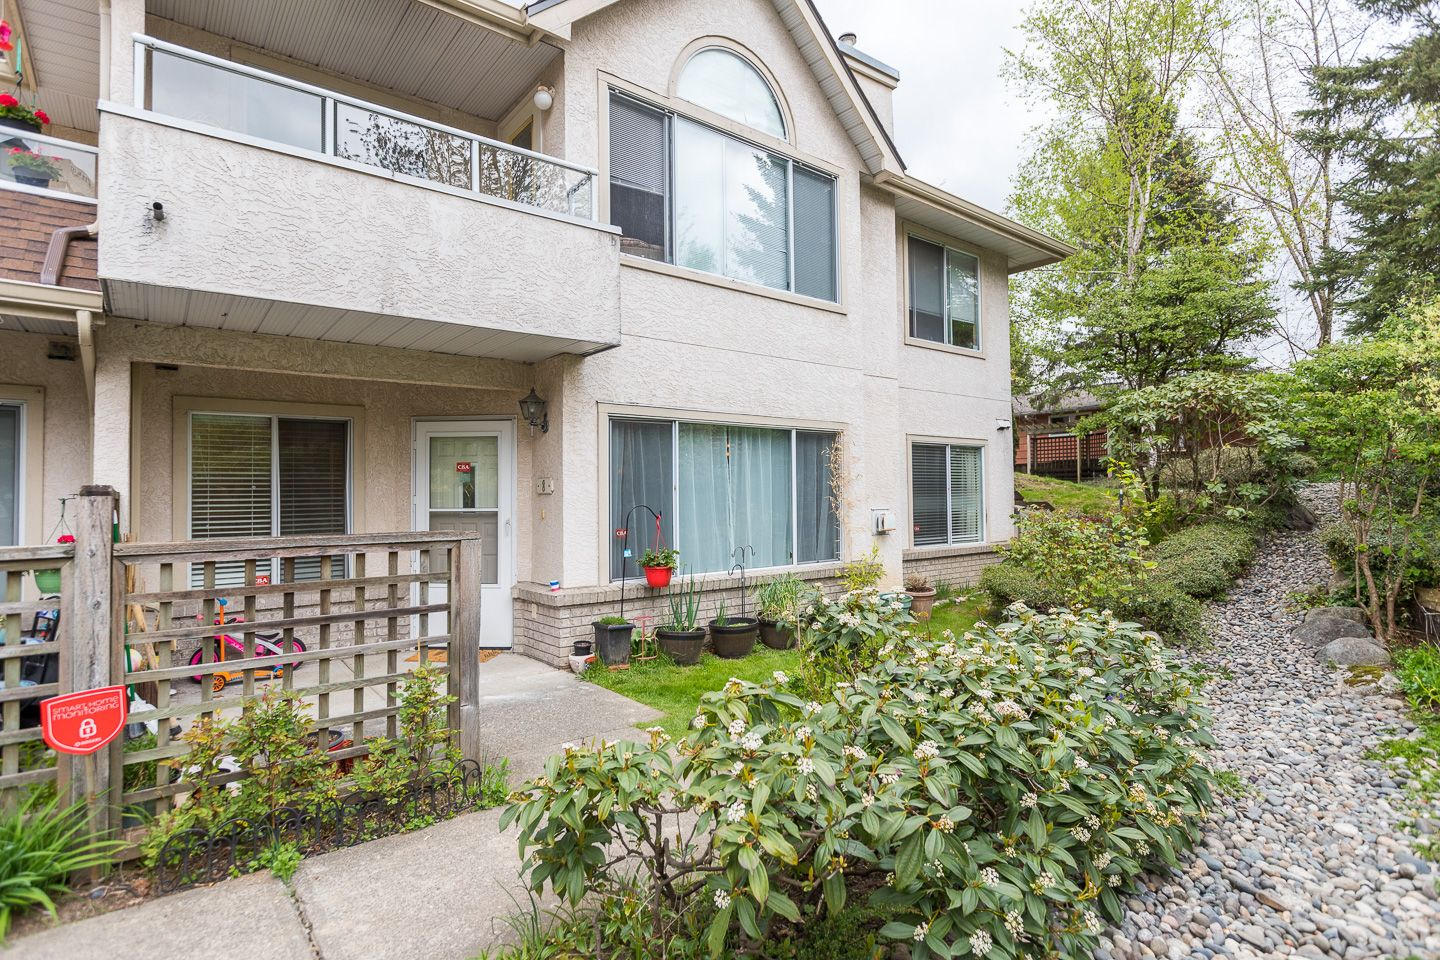 Photo 16: Photos: #8-3701 THURSTON ST in BURNABY: Central Park BS Condo for sale (Burnaby South)  : MLS®# R2572861